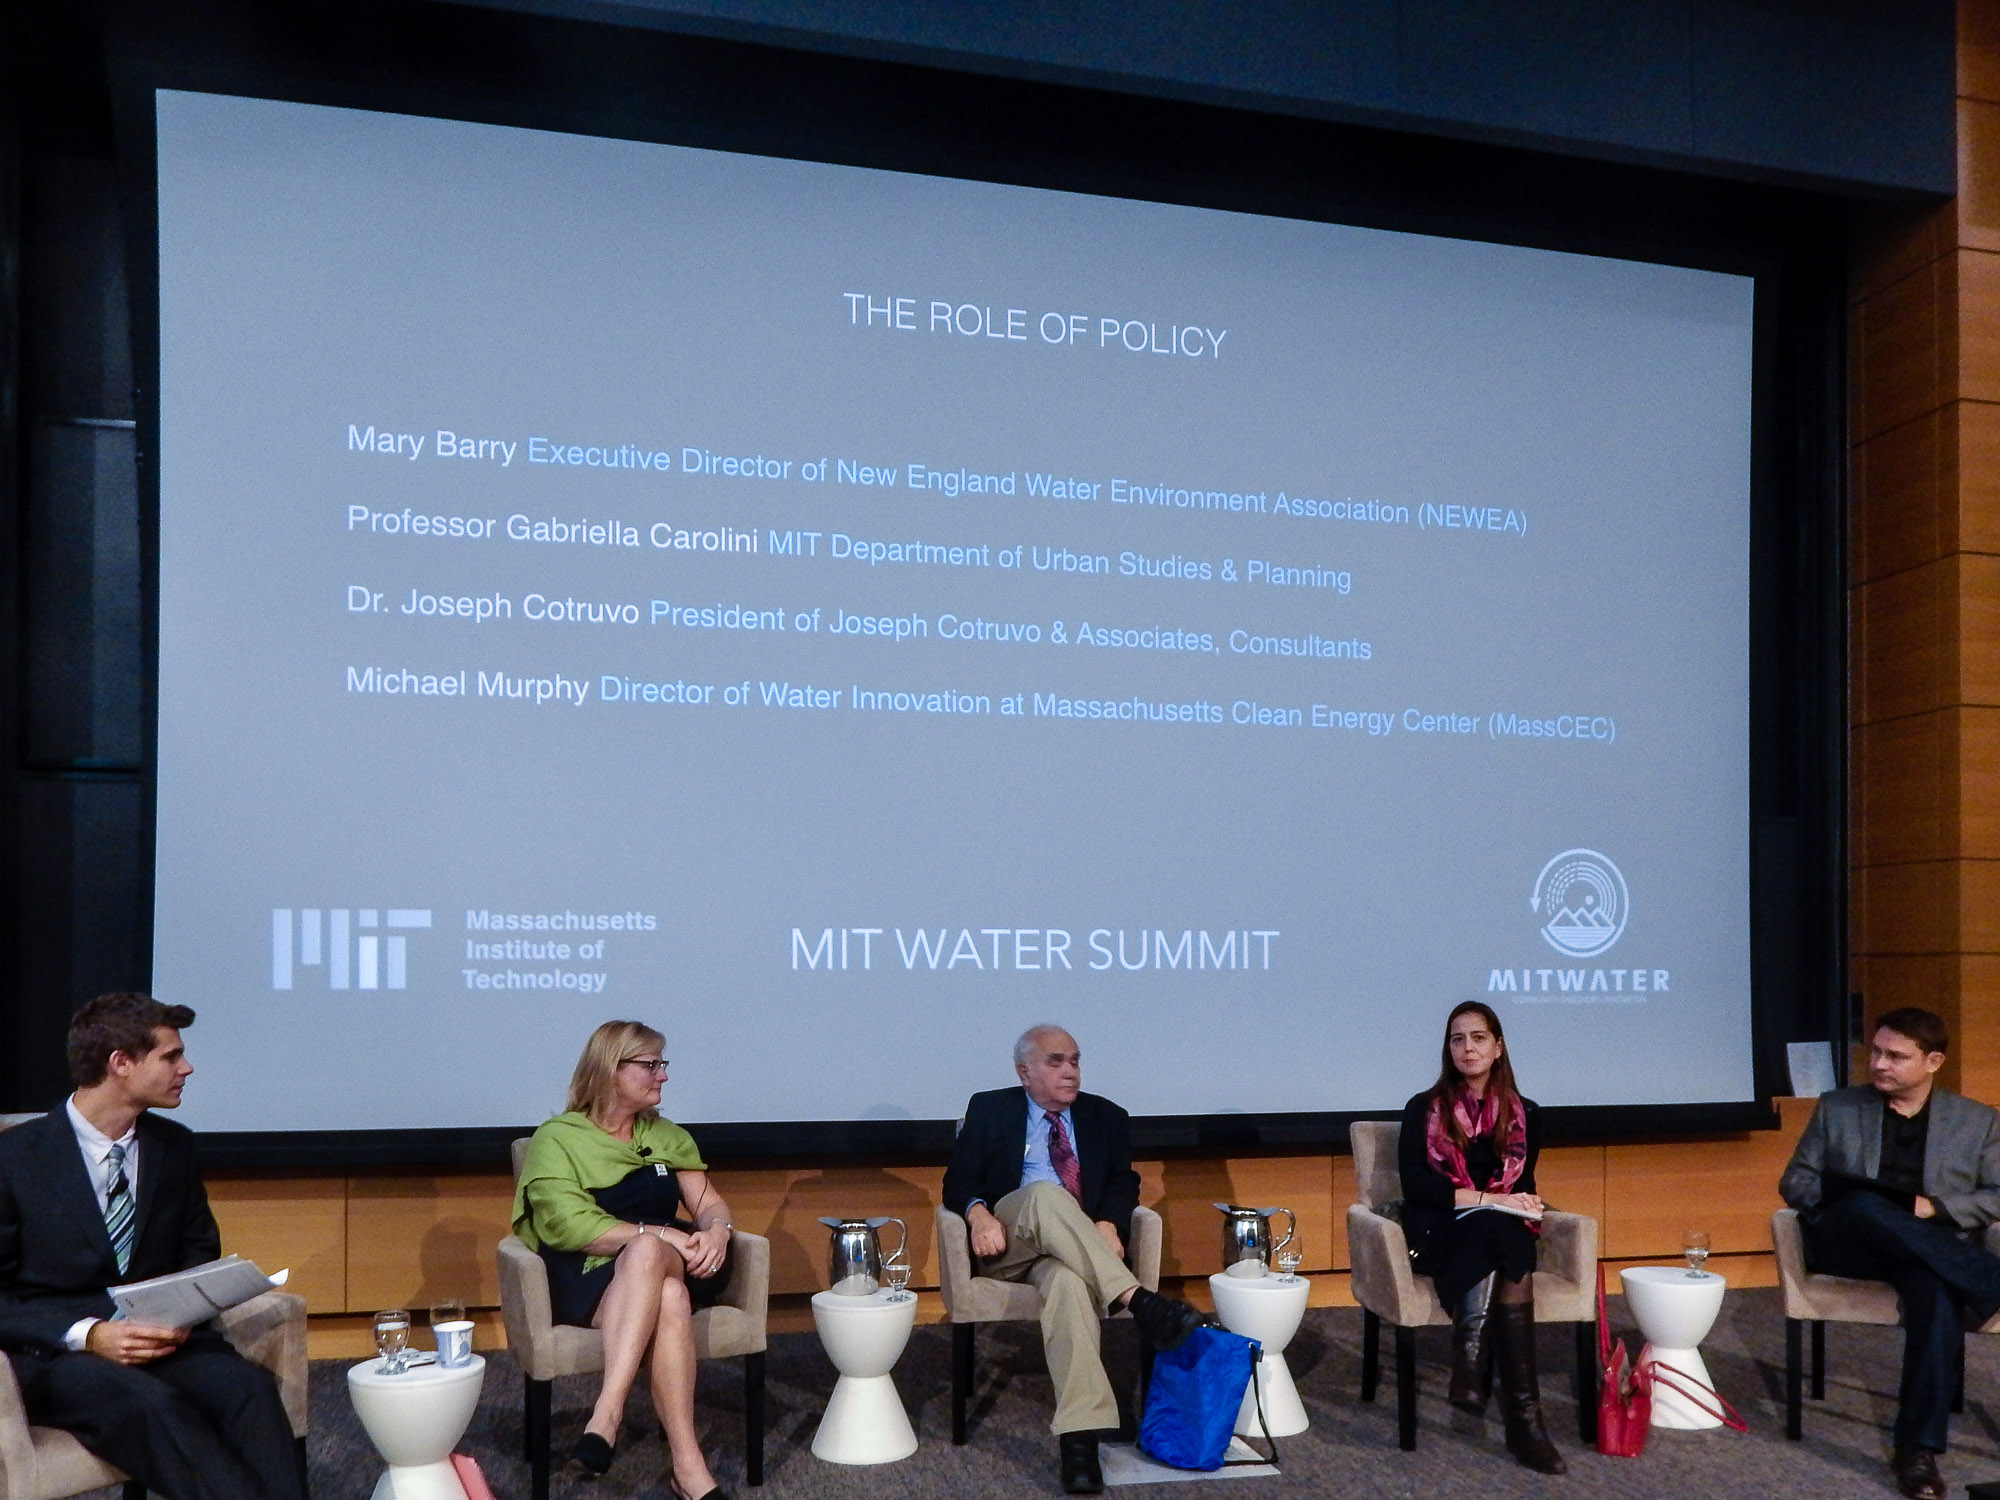 MIT Water Summit, 2016